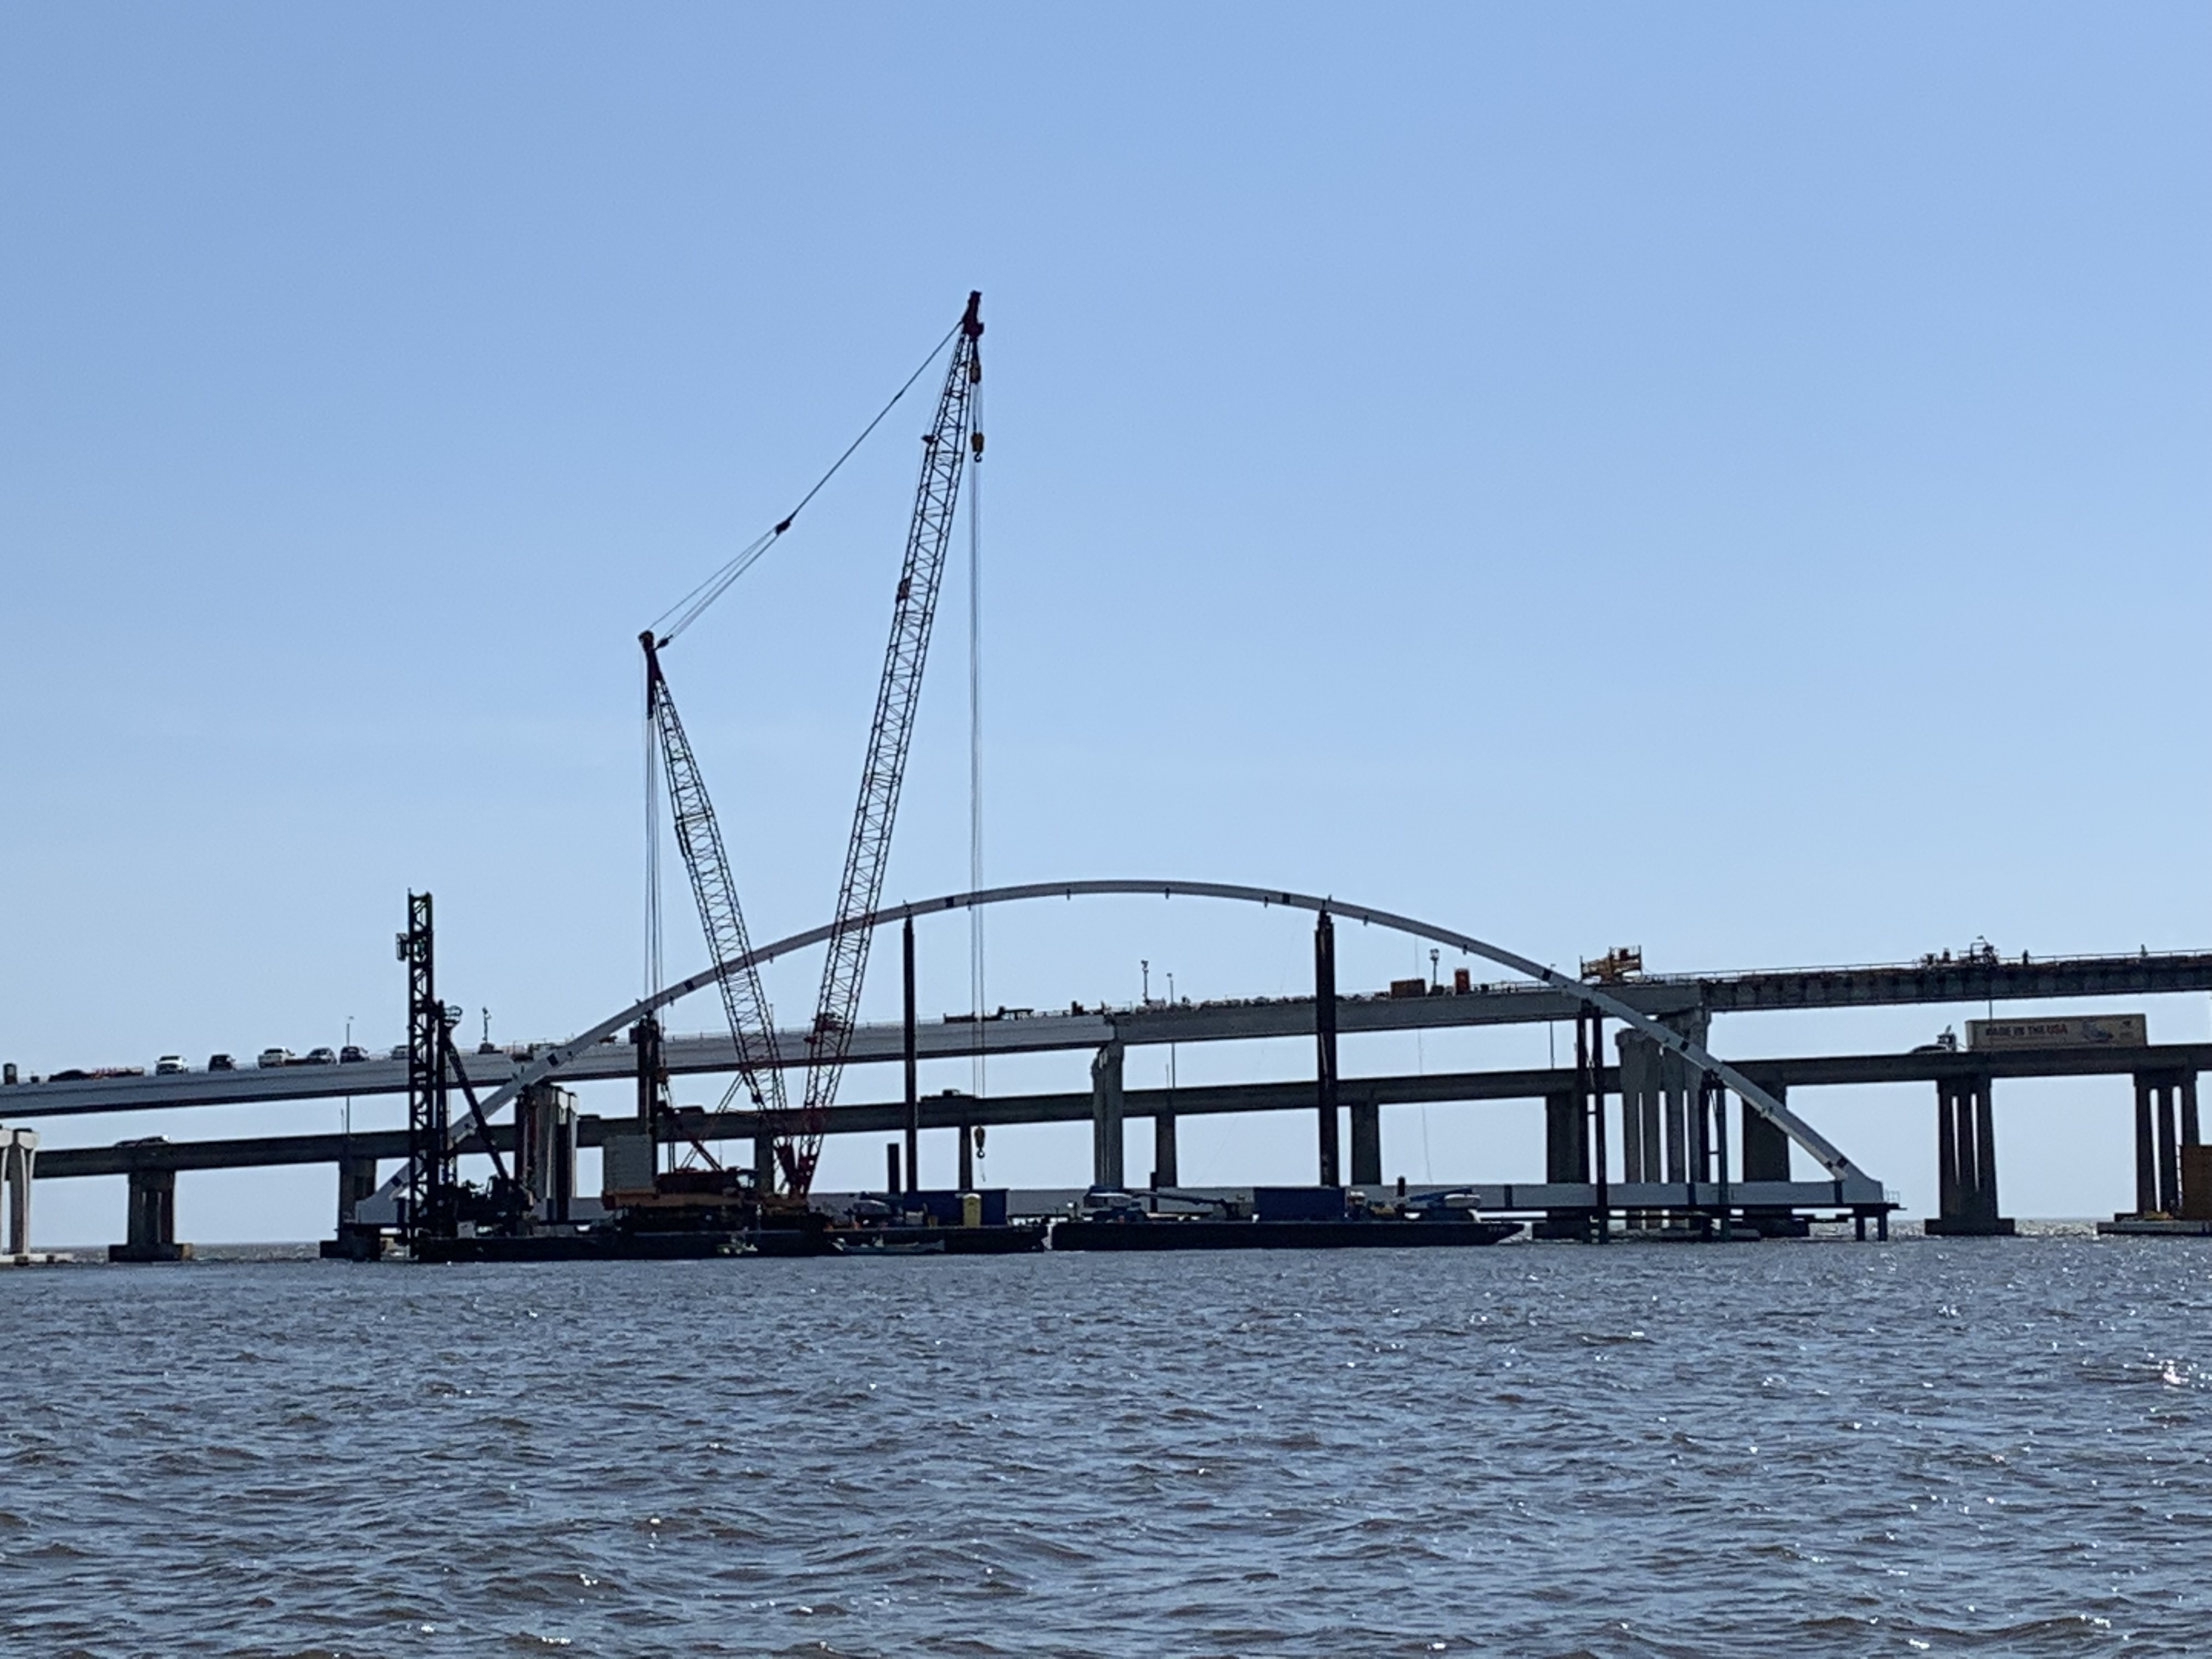 Steel arch for the eastbound bridge is currently being constructed